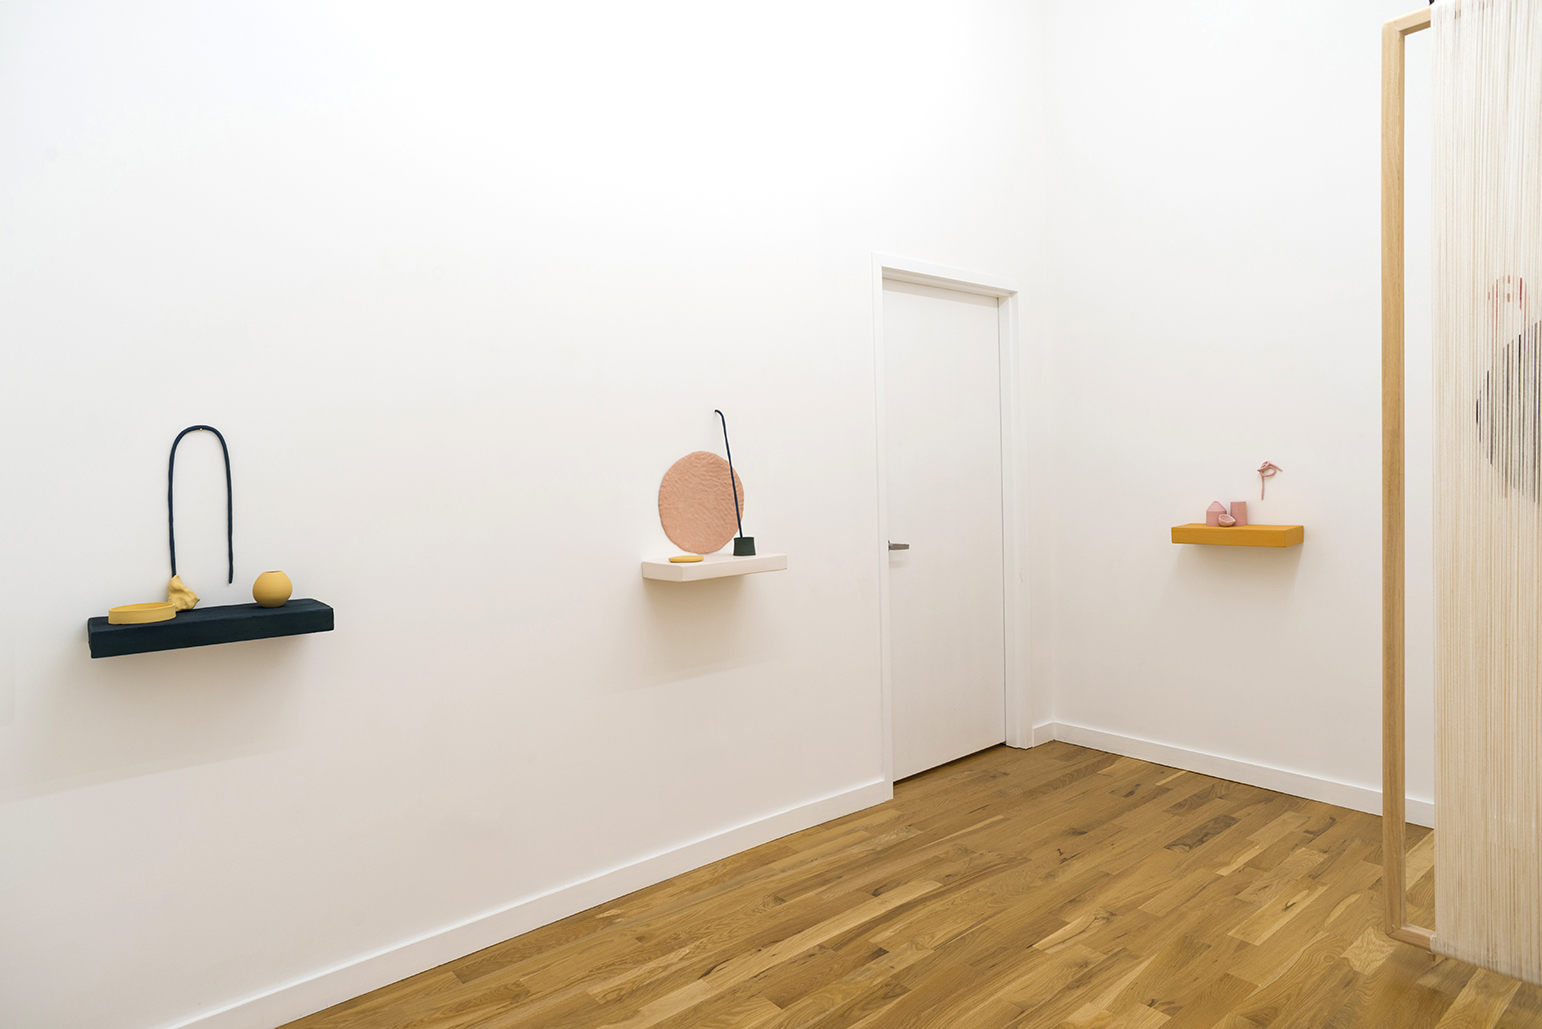 Installation view, Bit by Bit Above the Edge of Things